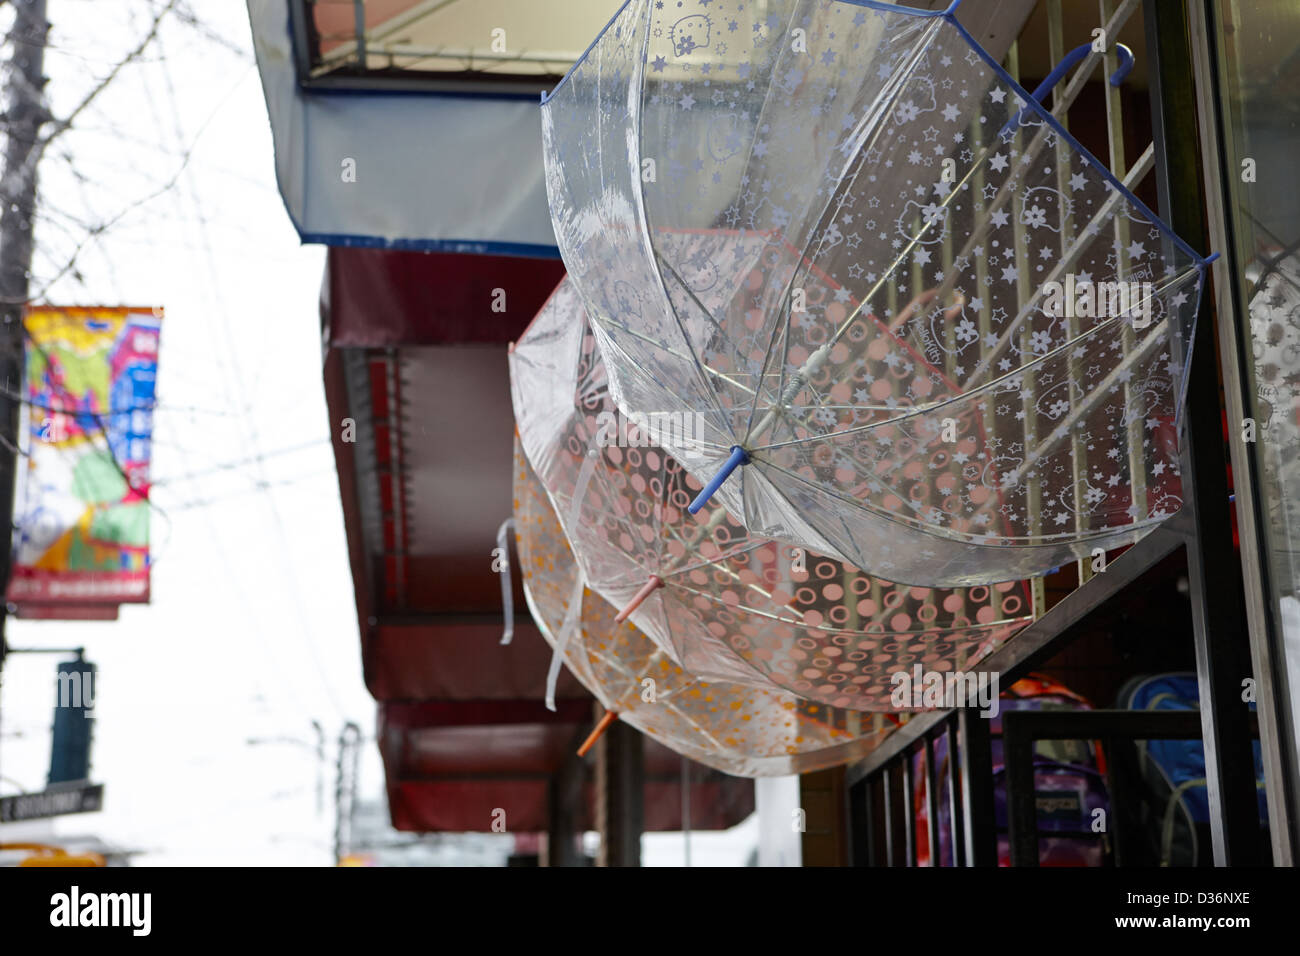 transparent umbrellas hanging outside on sale in a shop on a wet rainy day in downtown Vancouver BC Canada - Stock Image